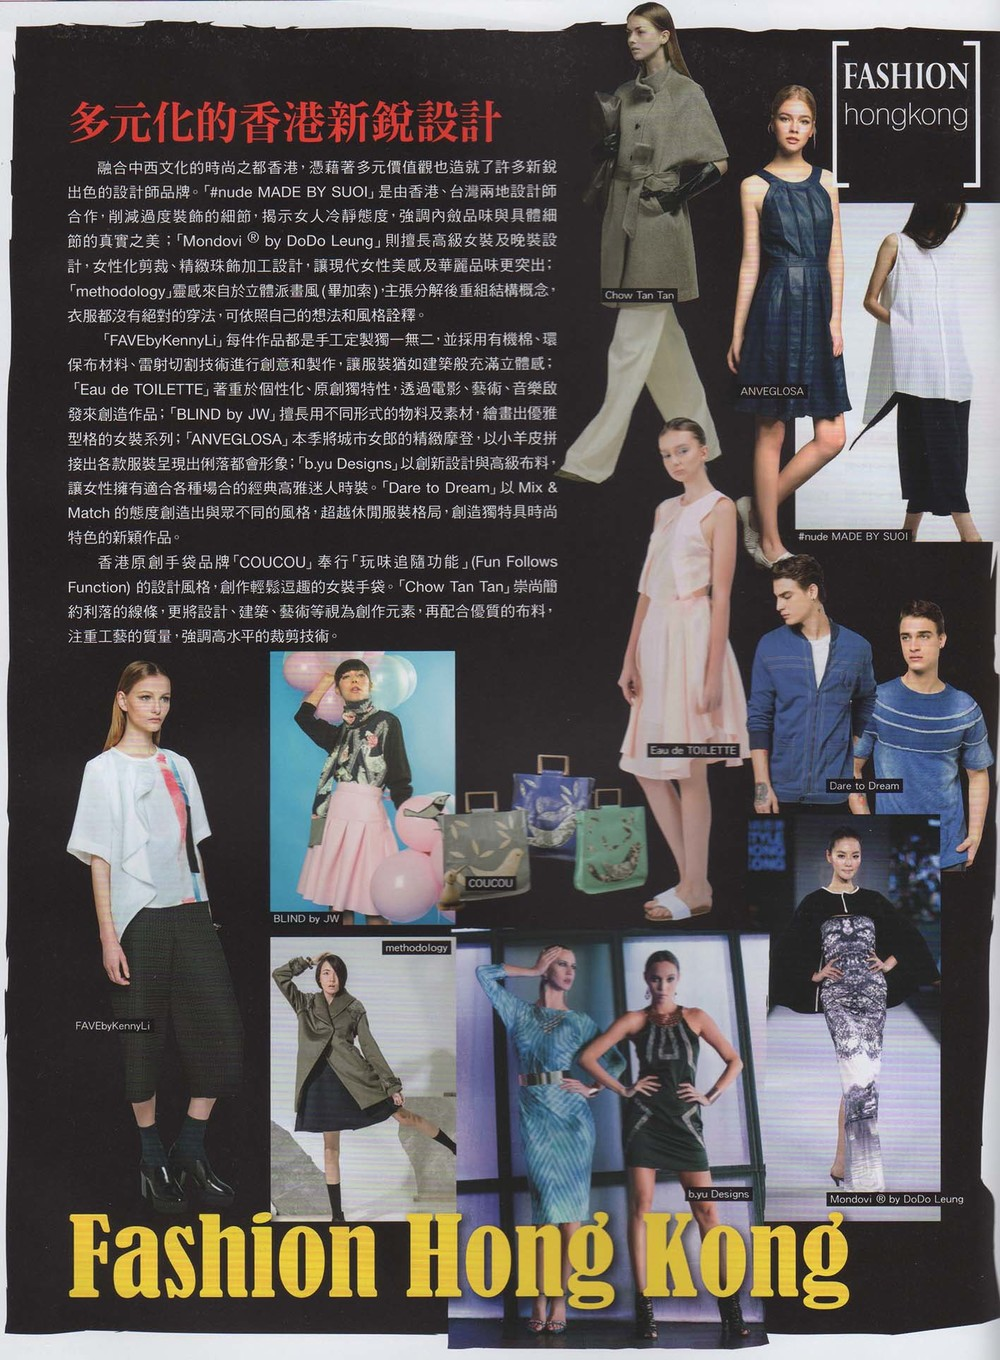 MARIE CLAIRE MAGAZINE Taipei IN Style Edition Published November 2015